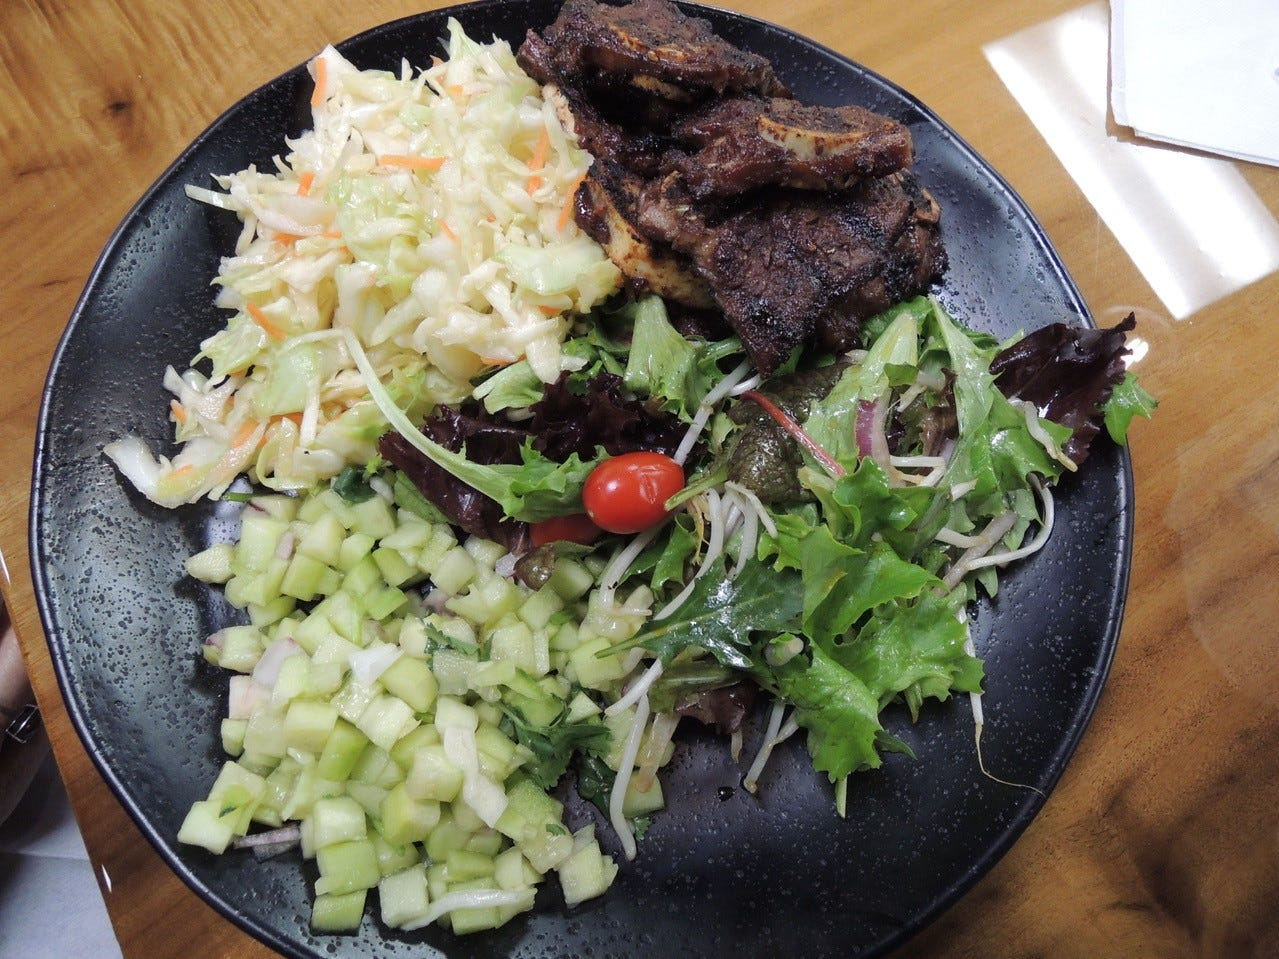 Korean barbecue ribs with Asian slaw and salad at Fresh Fire Grill's new location on Lake Boulevard.